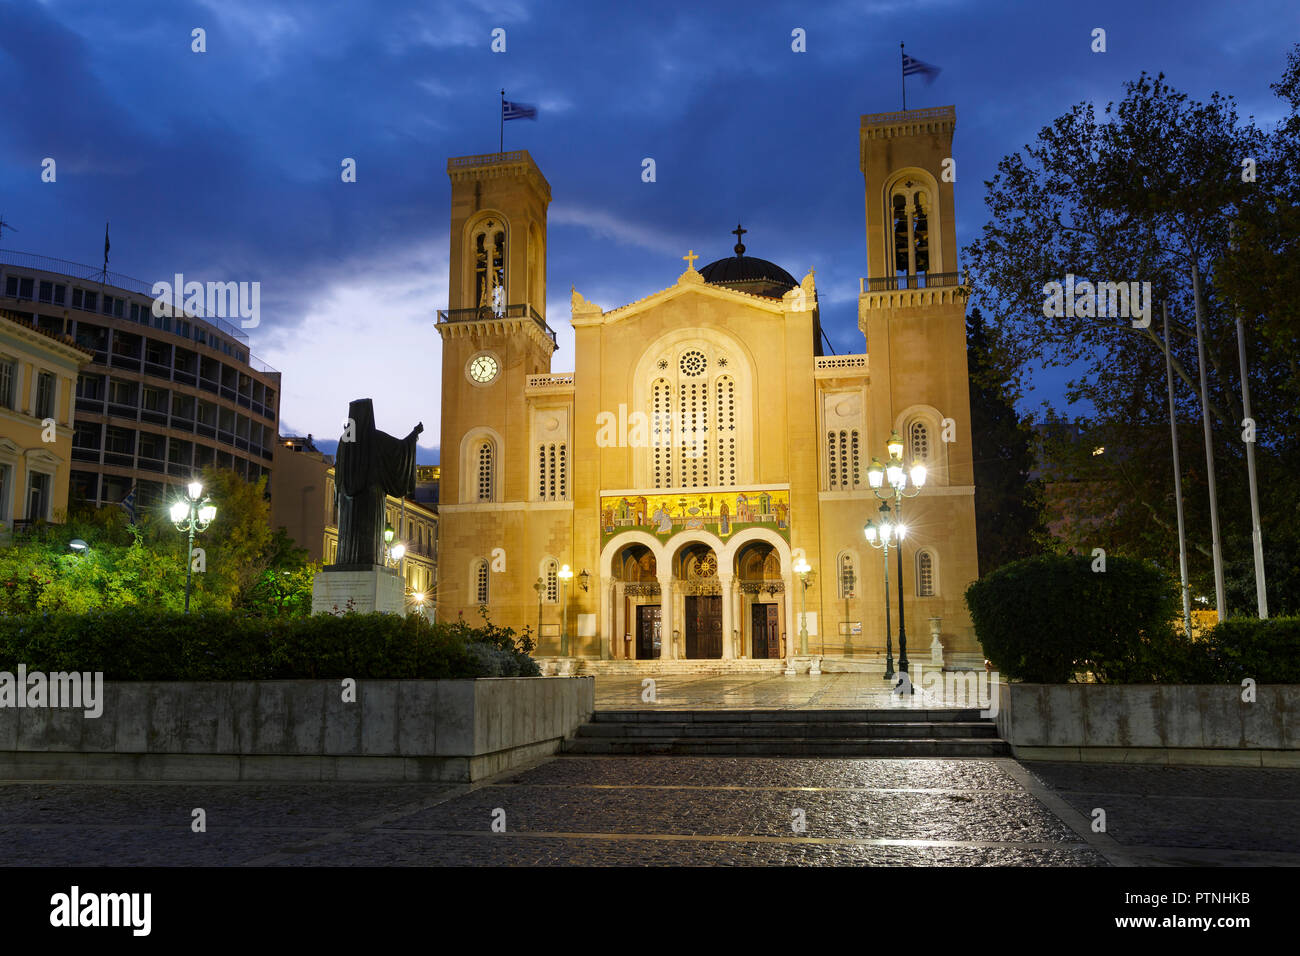 Athens, Greece - September 29, 2018: Metropolitan cathedral of Athens located in Metropolis square in Athenian old town. - Stock Image